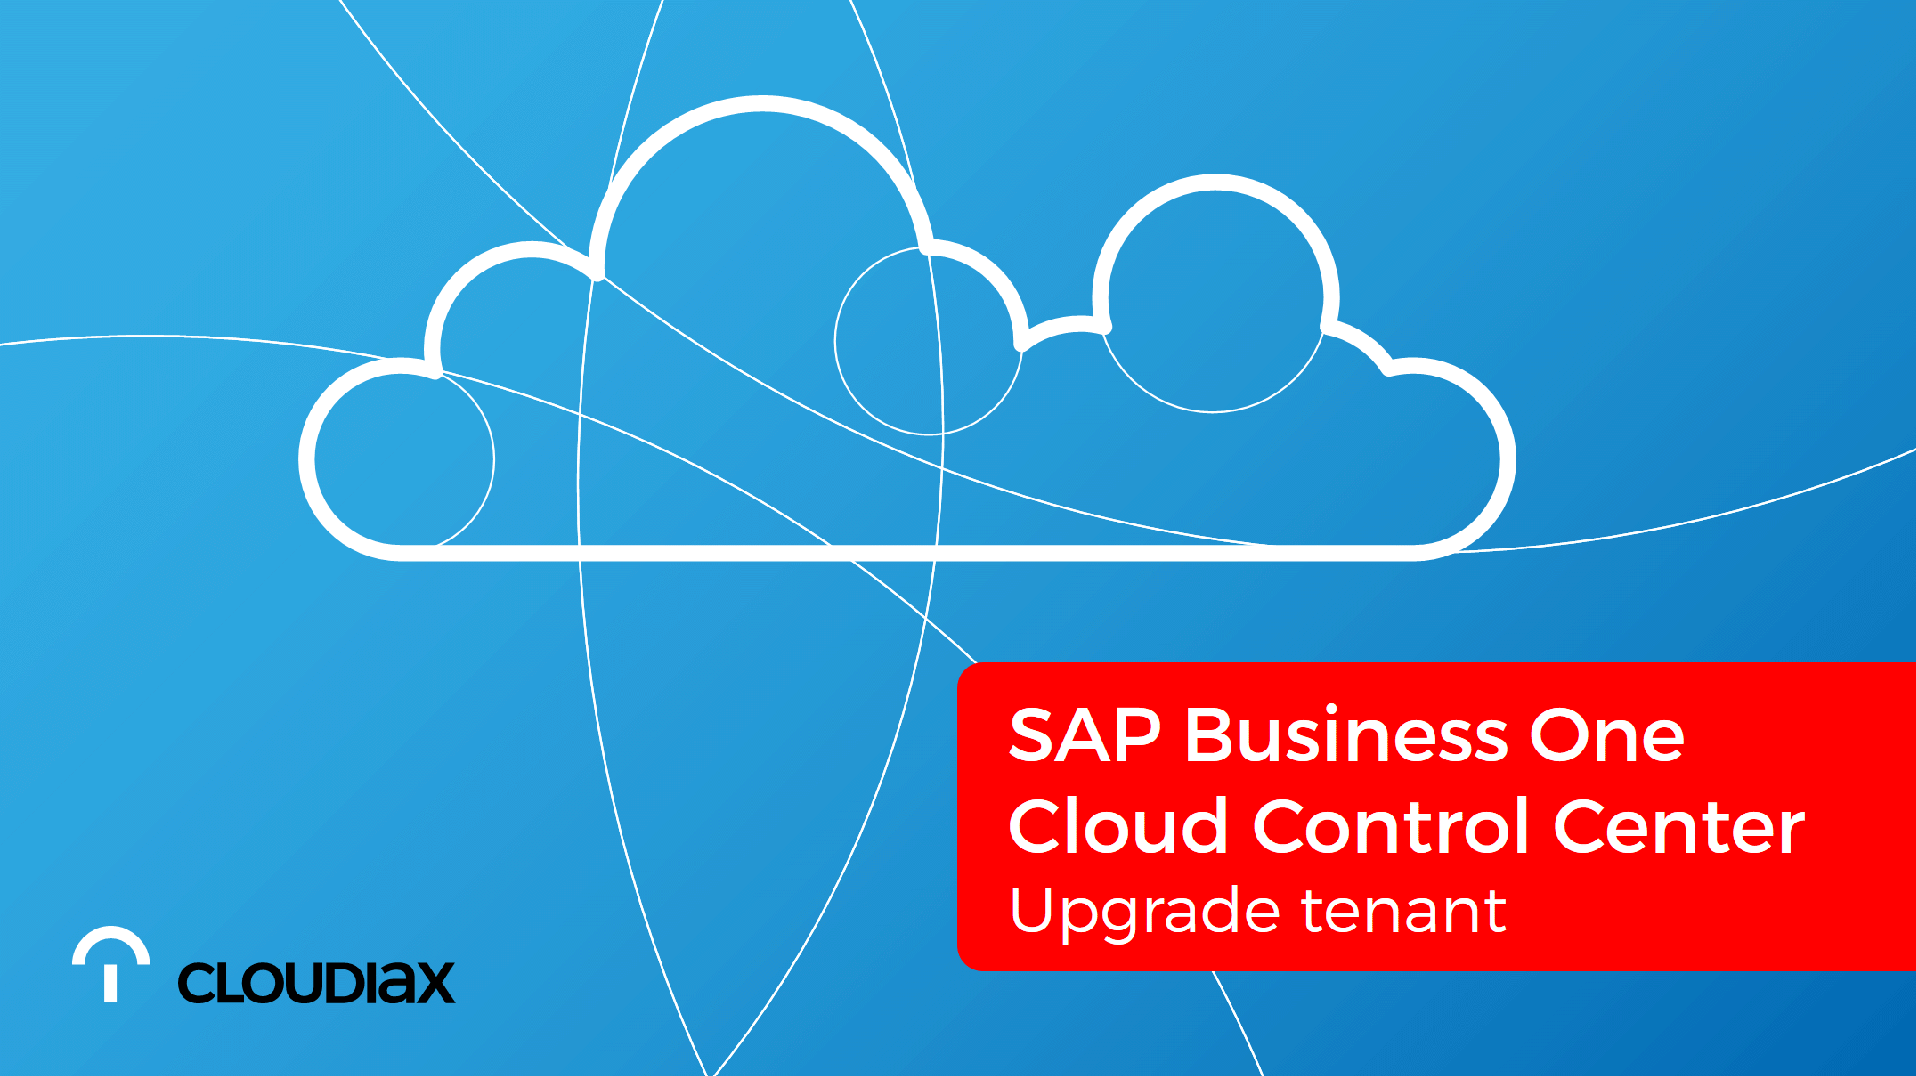 SAP Business One Cloud Control Center - Upgrade tenant